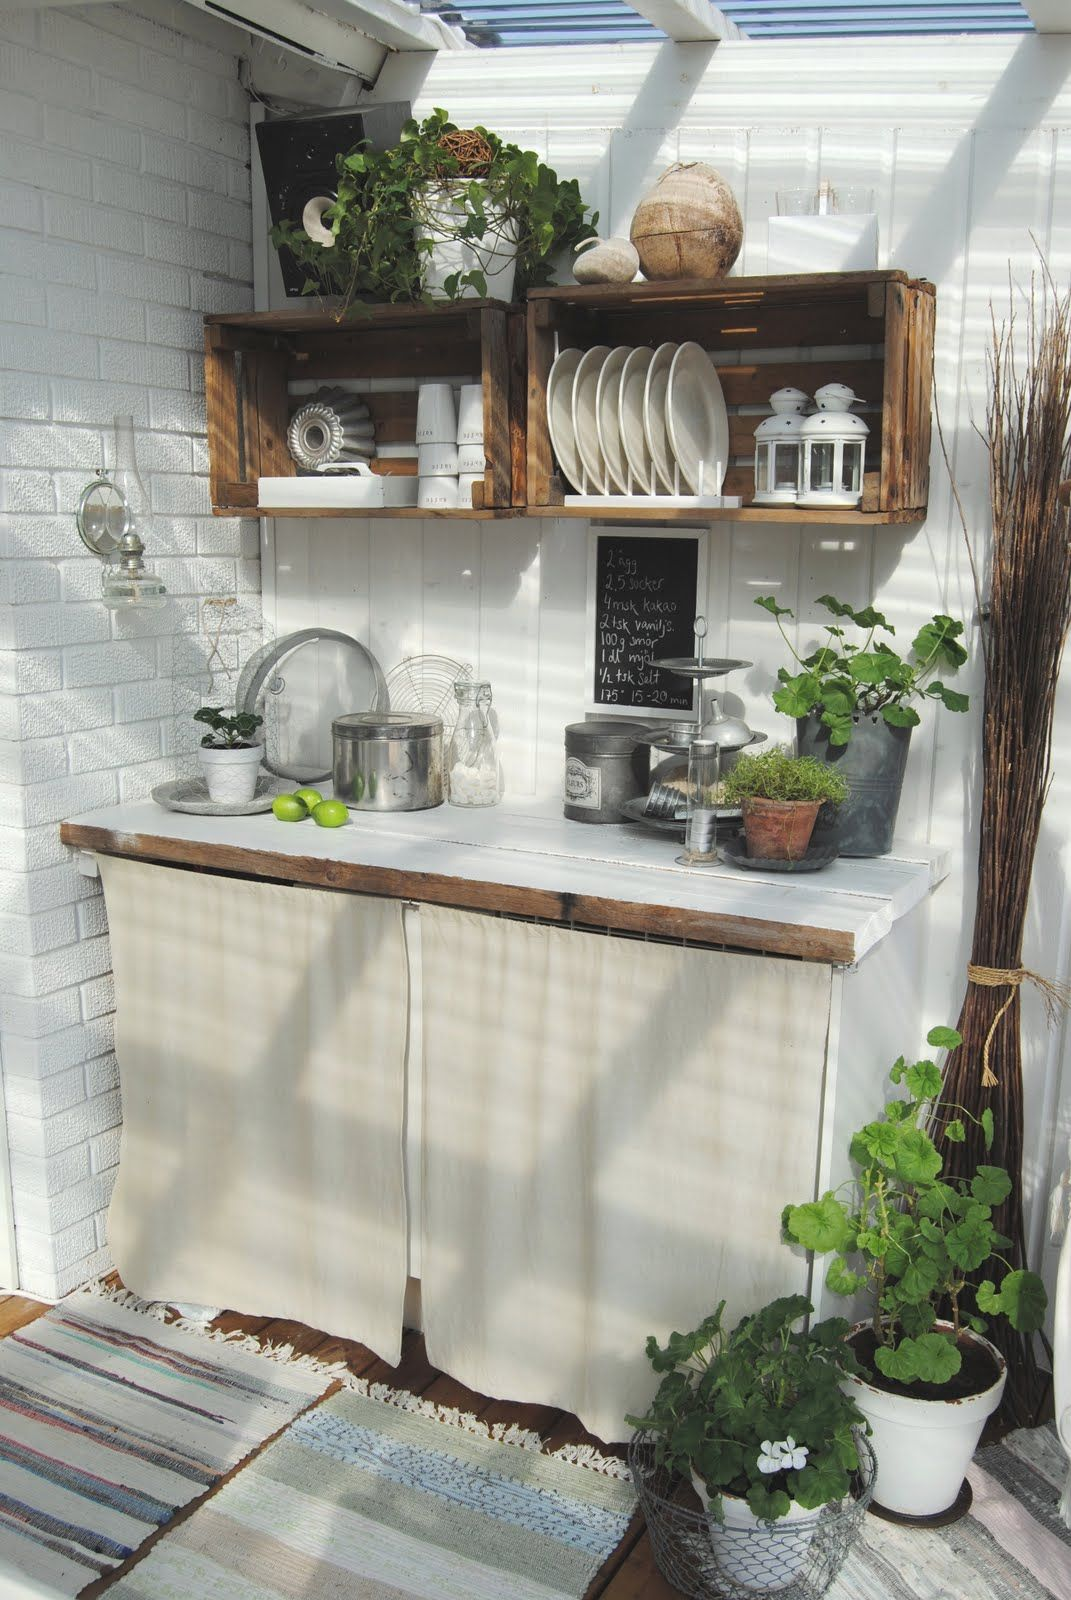 How to build outdoor kitchen cabinets - Cocinas de ladrillo rustico ...